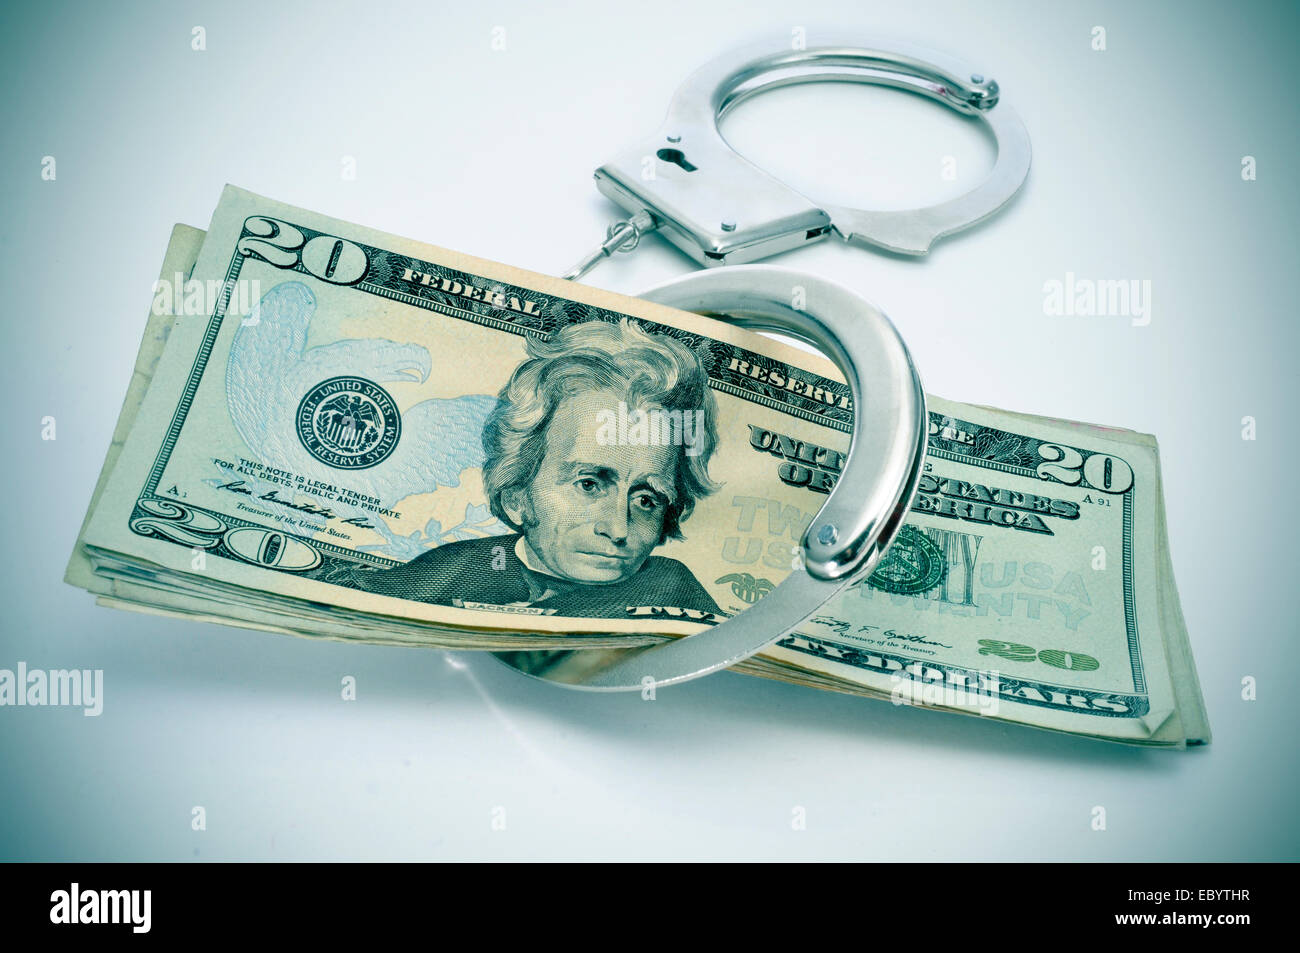 a pair of handcuffs and some dollar bills depicting the idea of arrest for bribery or corruption - Stock Image